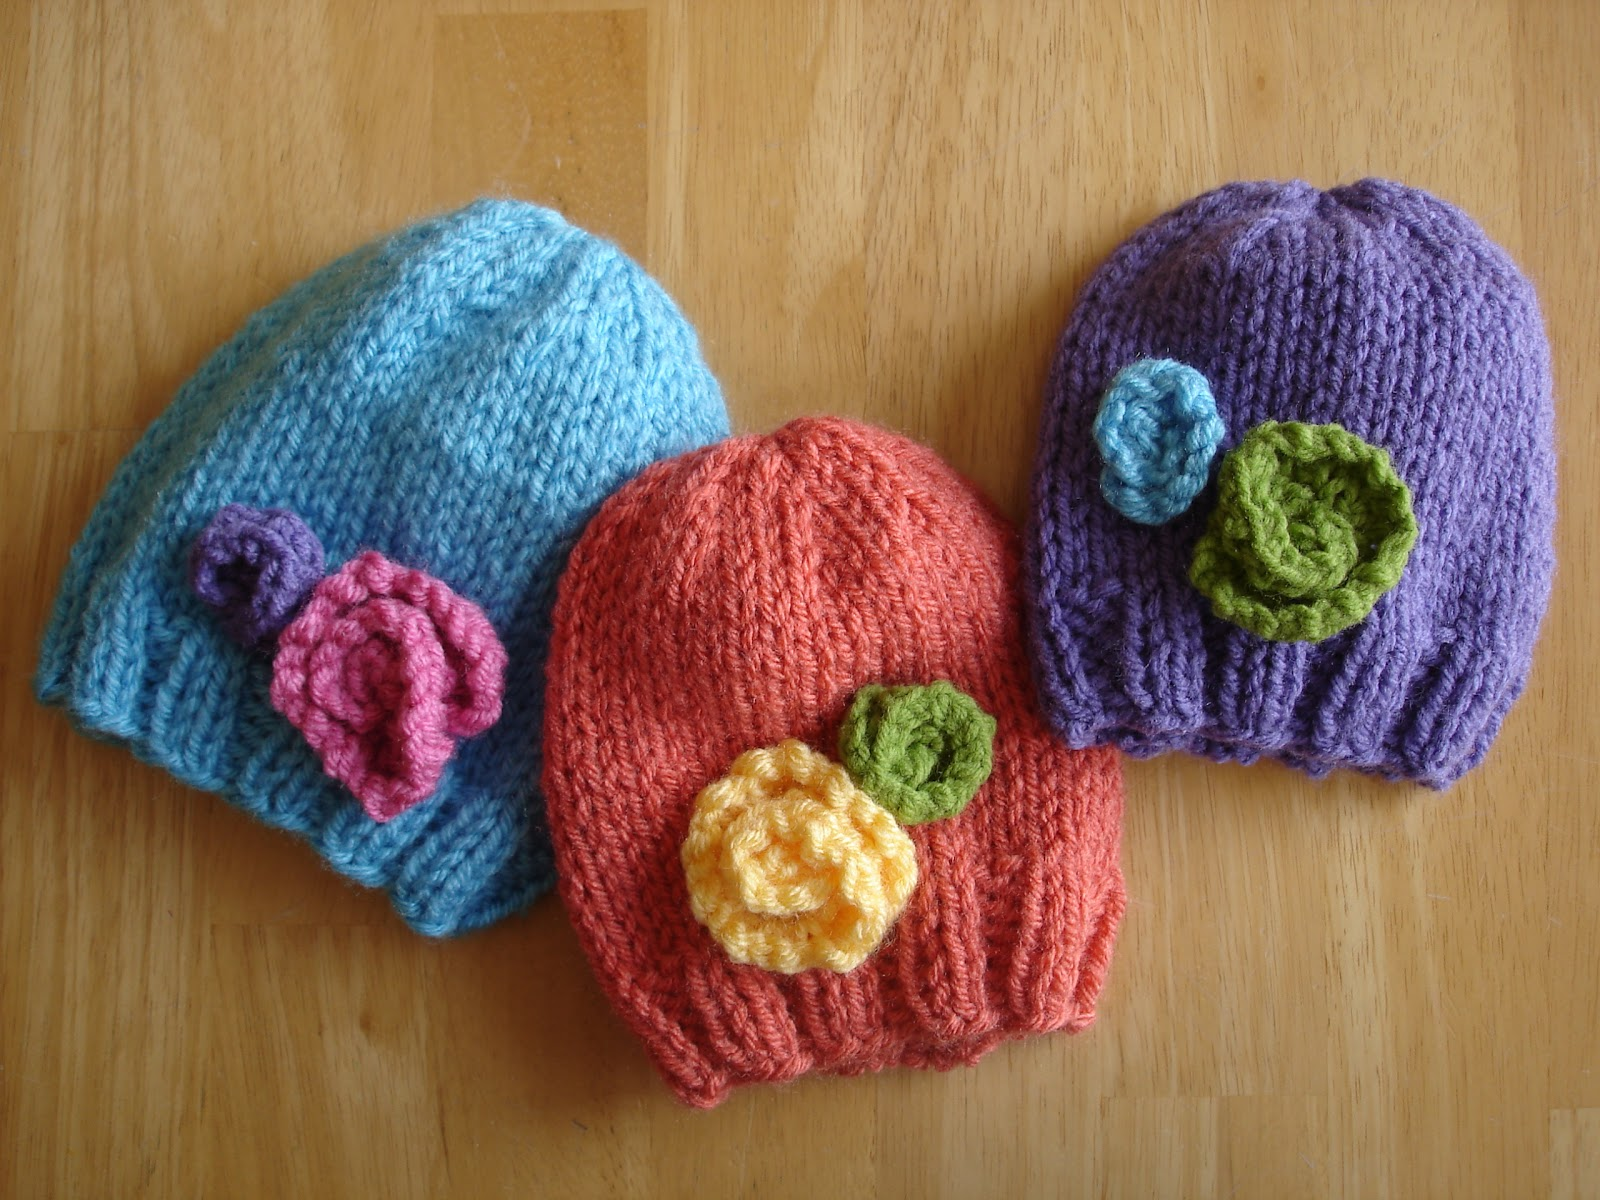 Knitting Patterns Free : Fiber Flux: Free Knitting Pattern! Baby In Bloom Hats